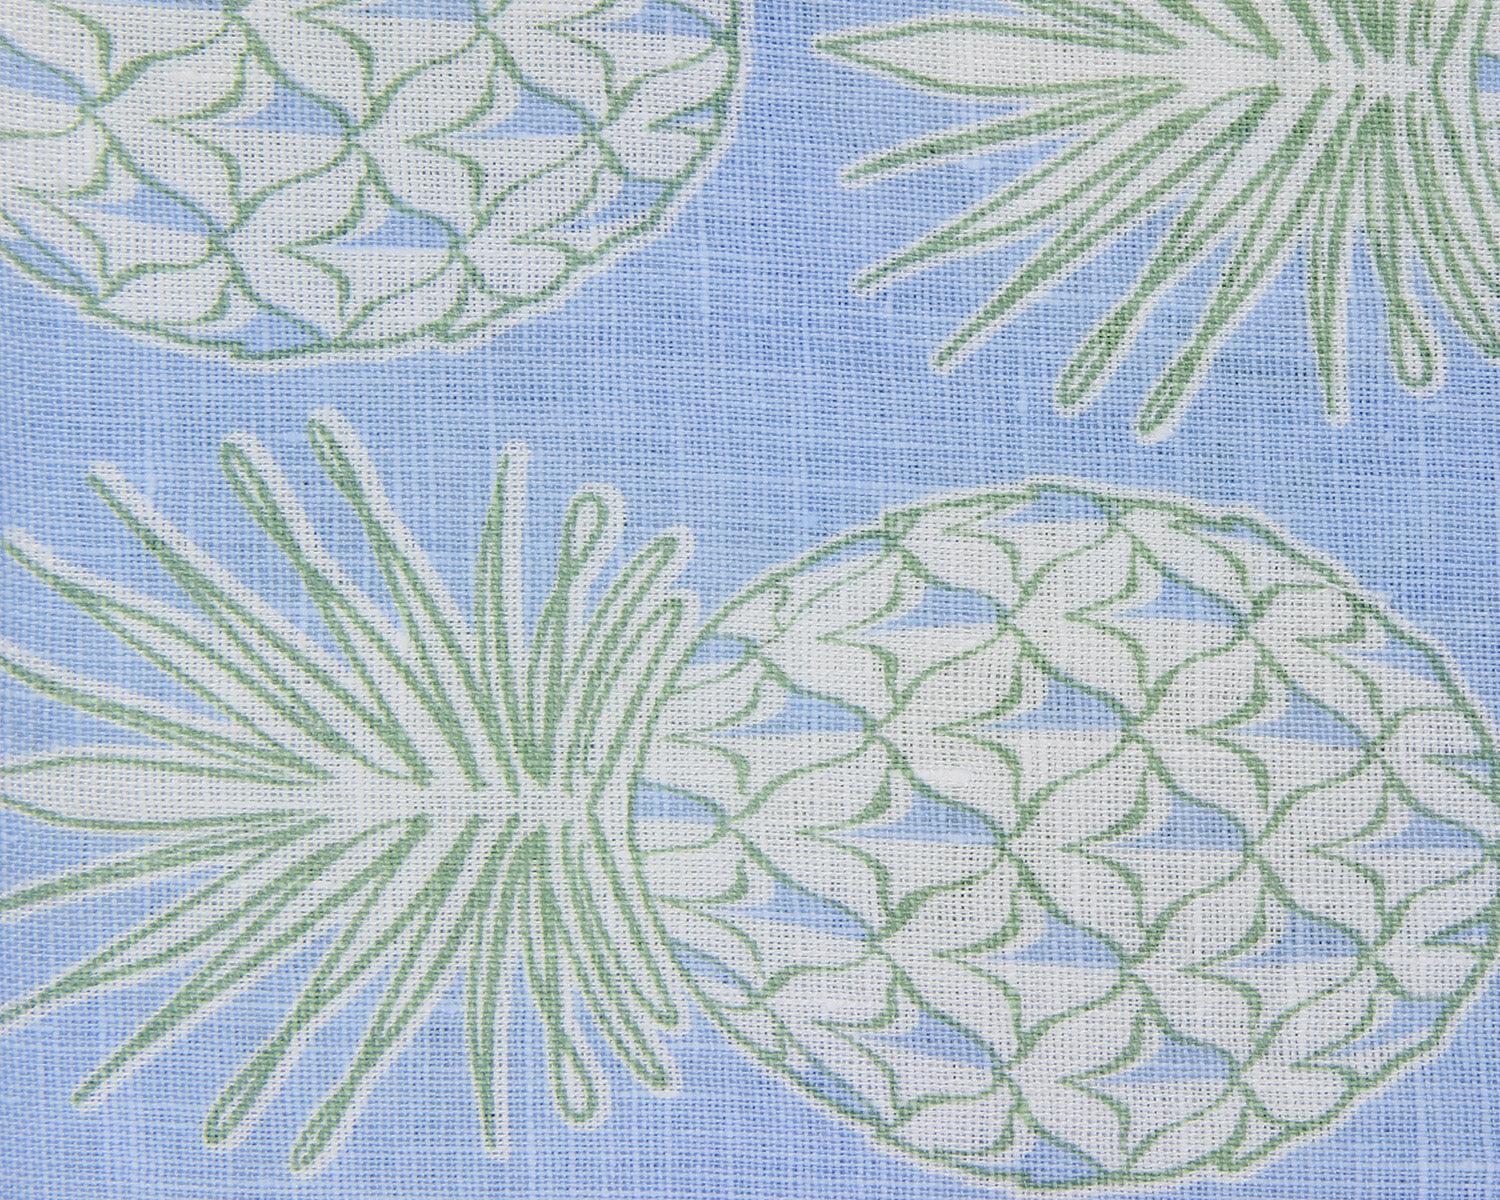 Lotty B Tablecloth & Napkin set: PINEAPPLE - OLIVE swatch